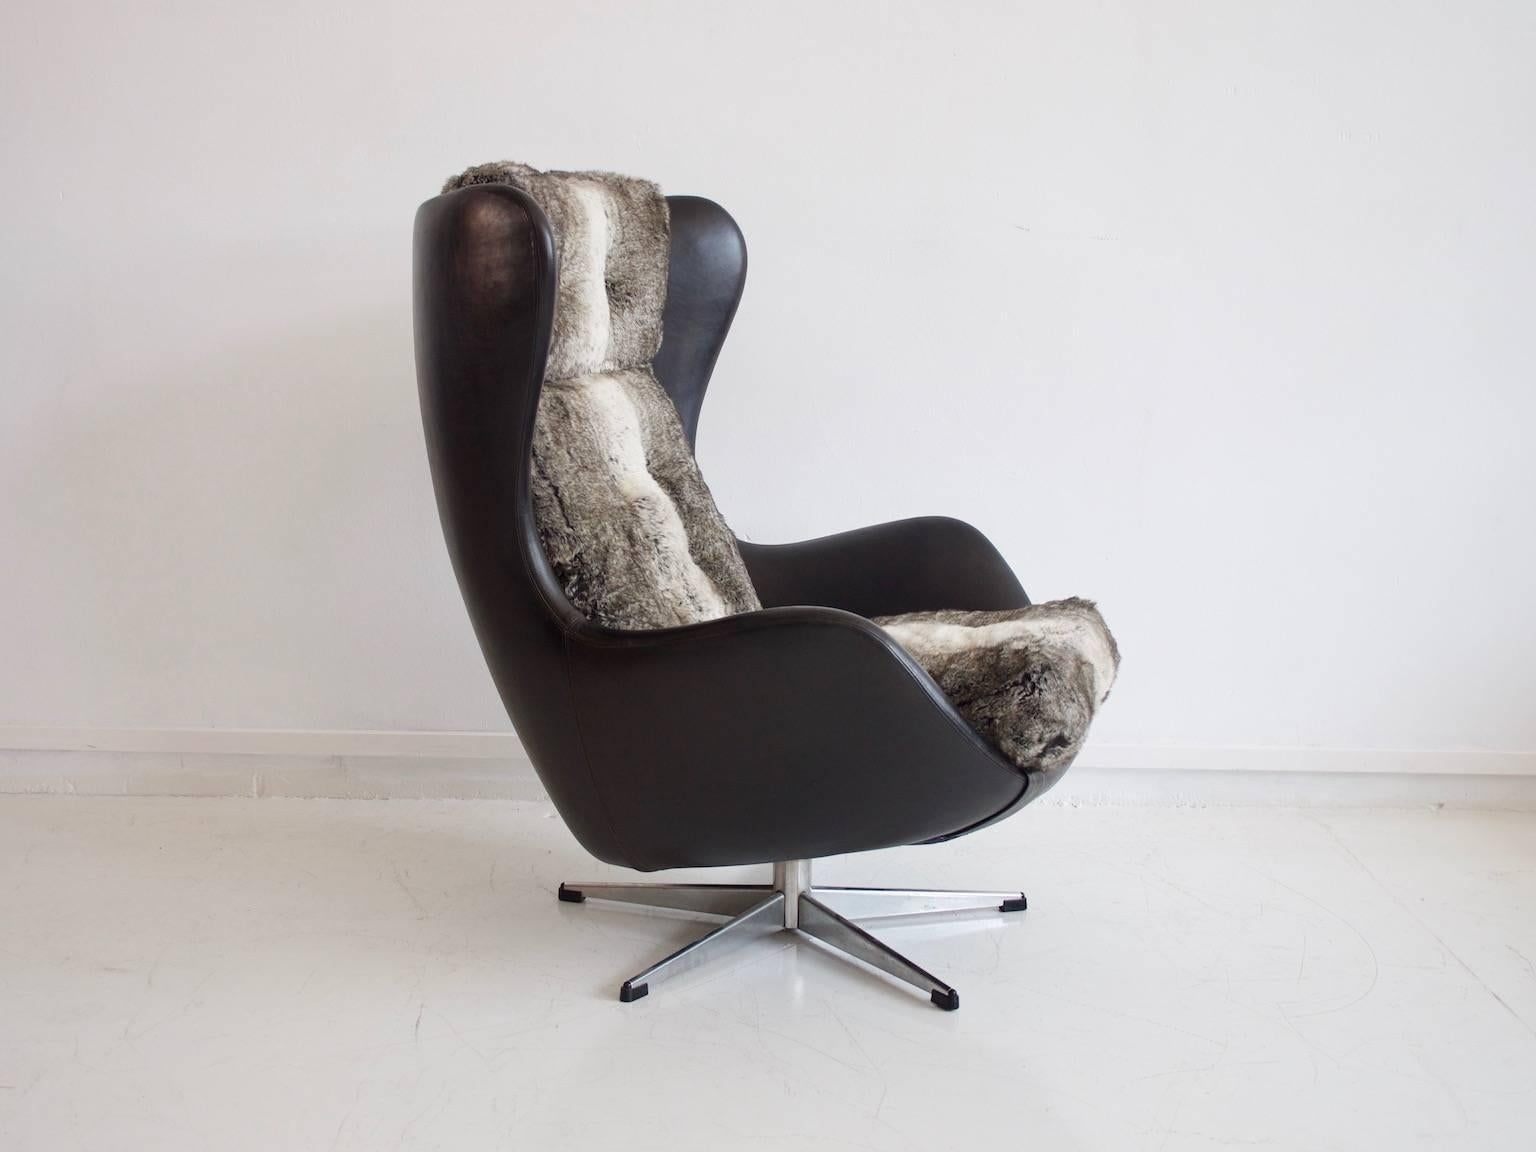 Scandinavian Modern Danish Swivel Armchair Upholstered With Black Leather  And Faux Fur For Sale